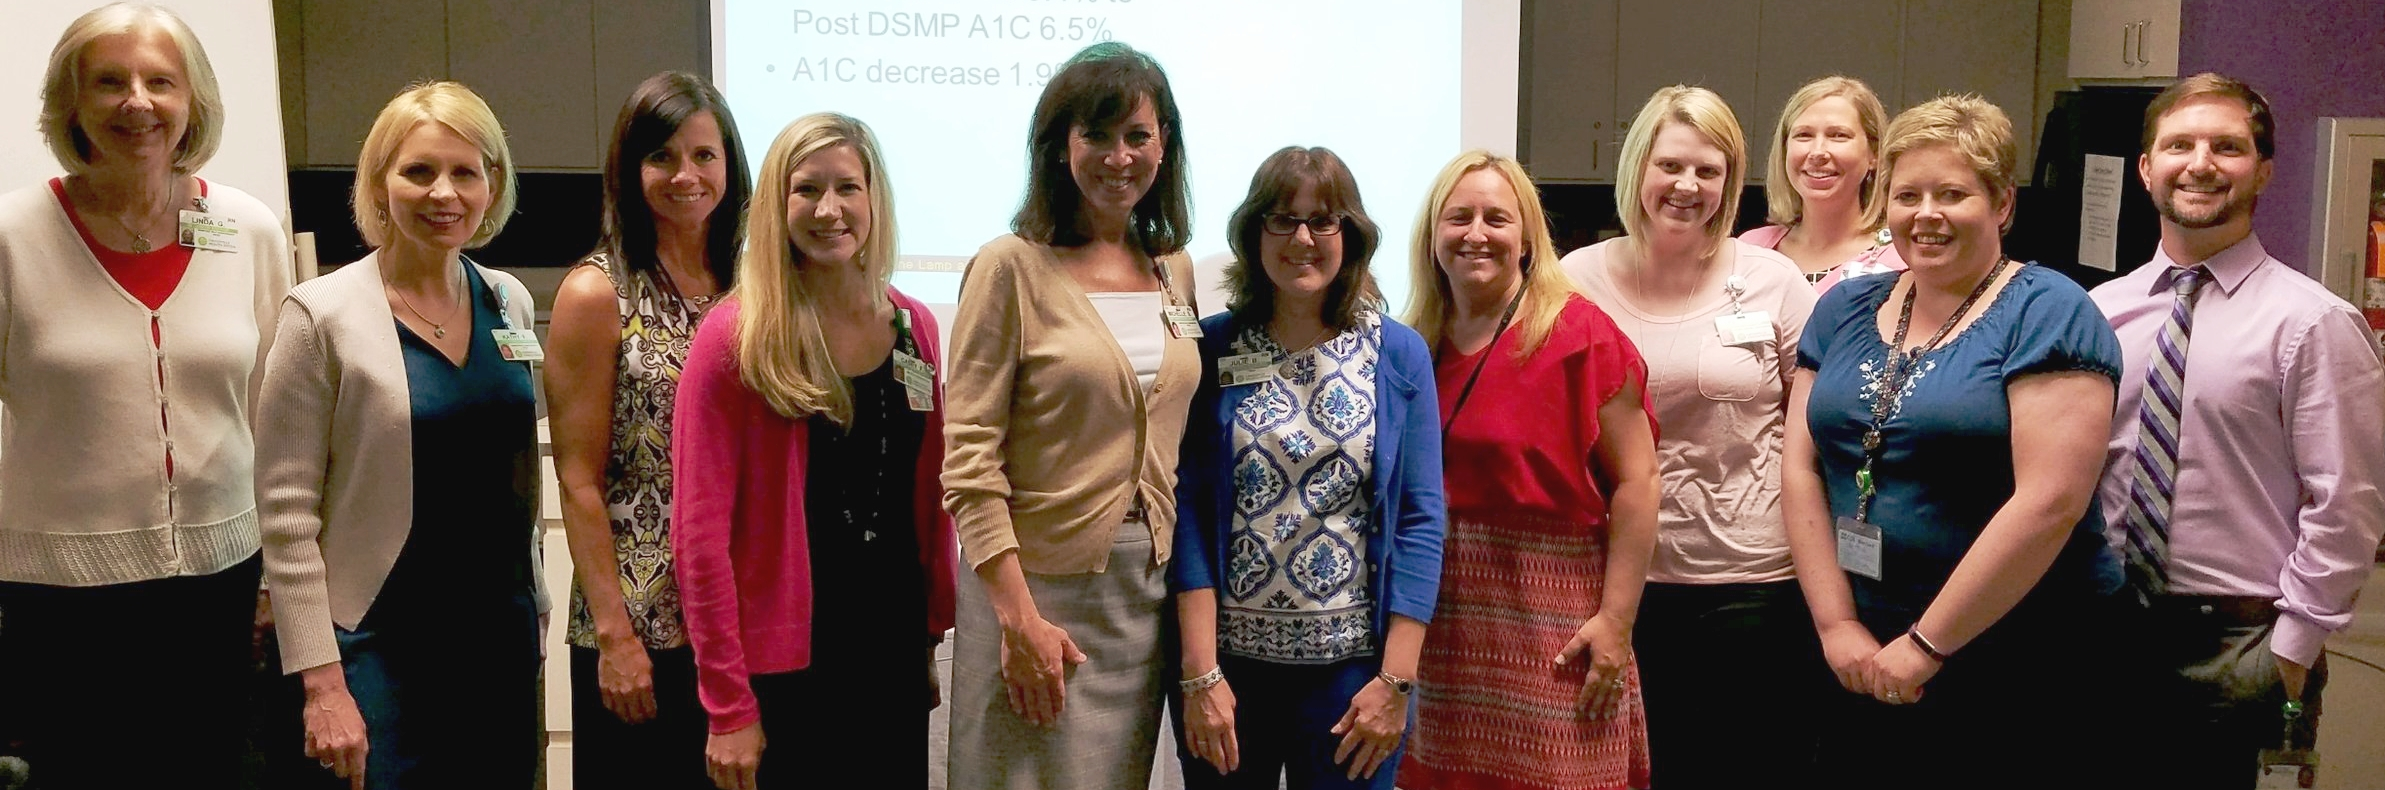 Left to right: Linda Goller, Kathy Fincher, Cheryl Holcher, Casey Fiocchi, Michelle Stencil, Julie Bolderson from Greenville Health System; Christine Nemshick-Lauer, Greenville VR Counselor; Kelli Alexander, Greenville Health System; Ginny Hughes and Sallie Housley, Greenville VR Counselors; Bradyn Roddy, Laurens VR Counselor.